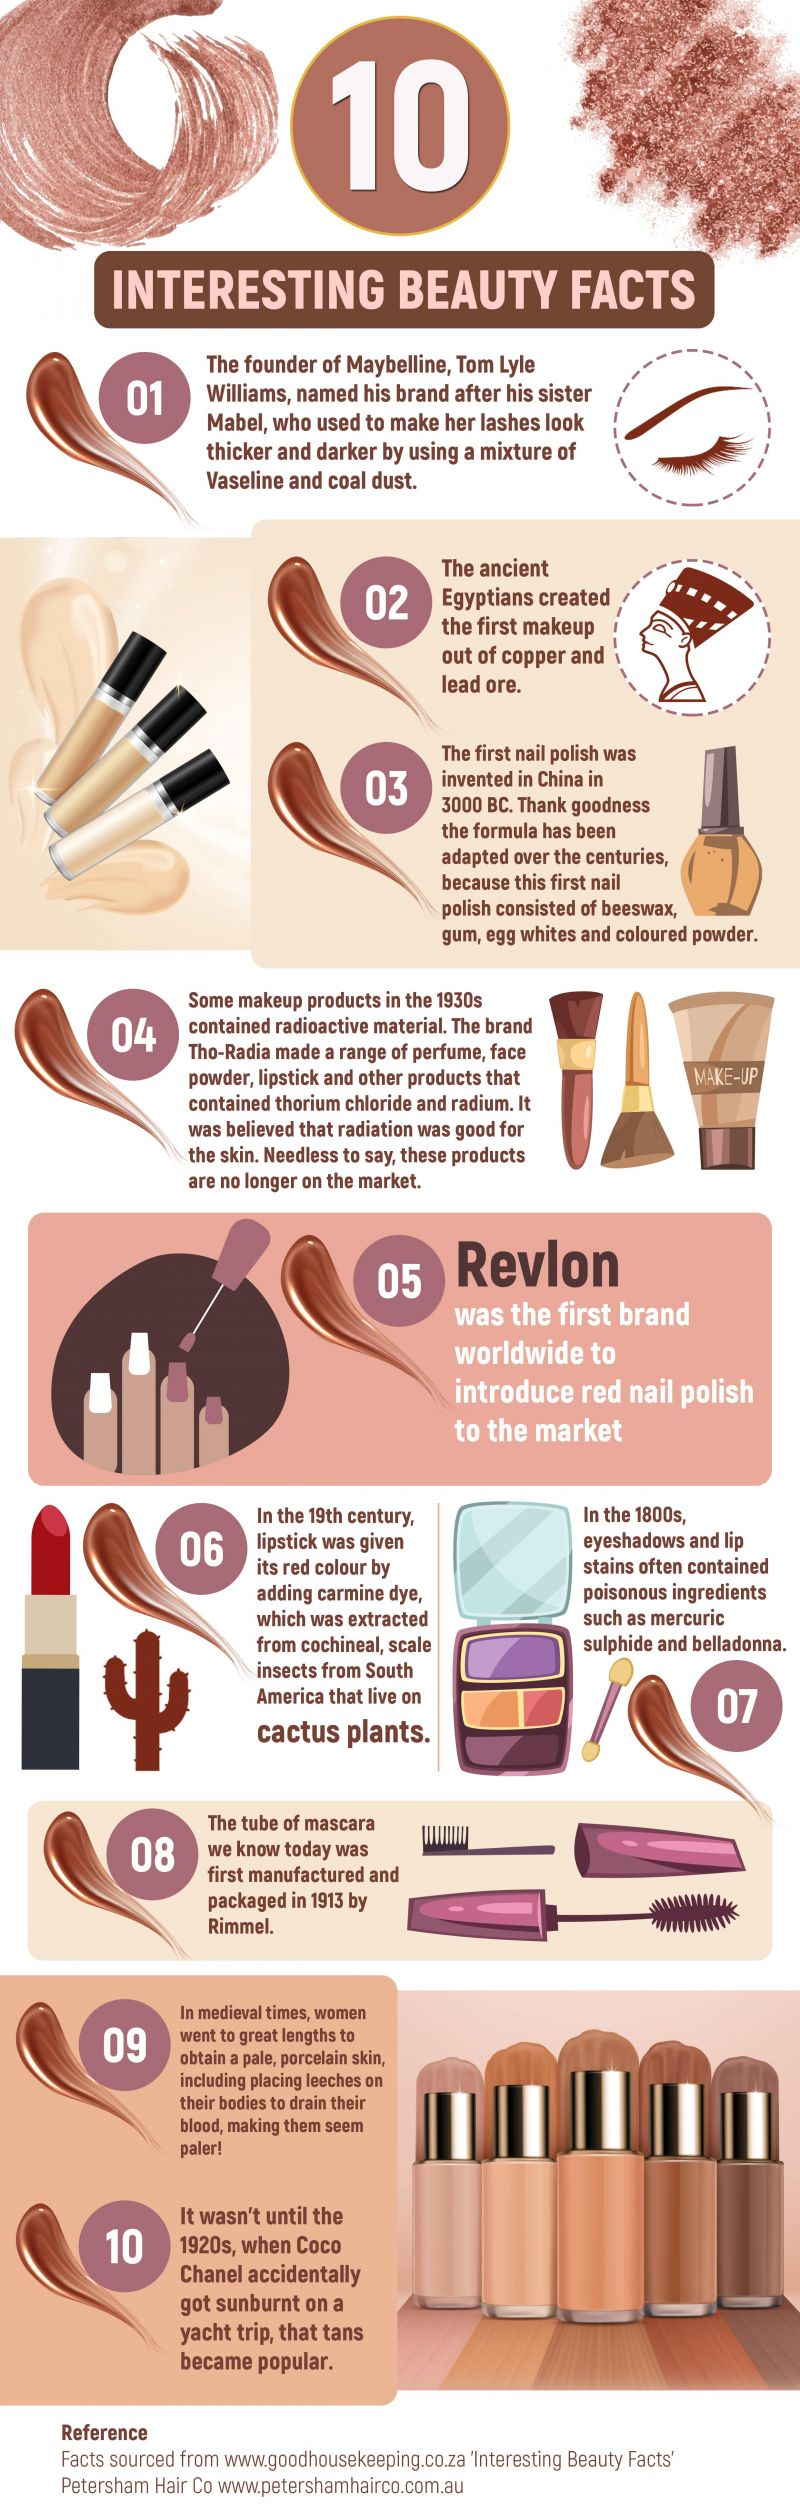 beauty-facts-infographic